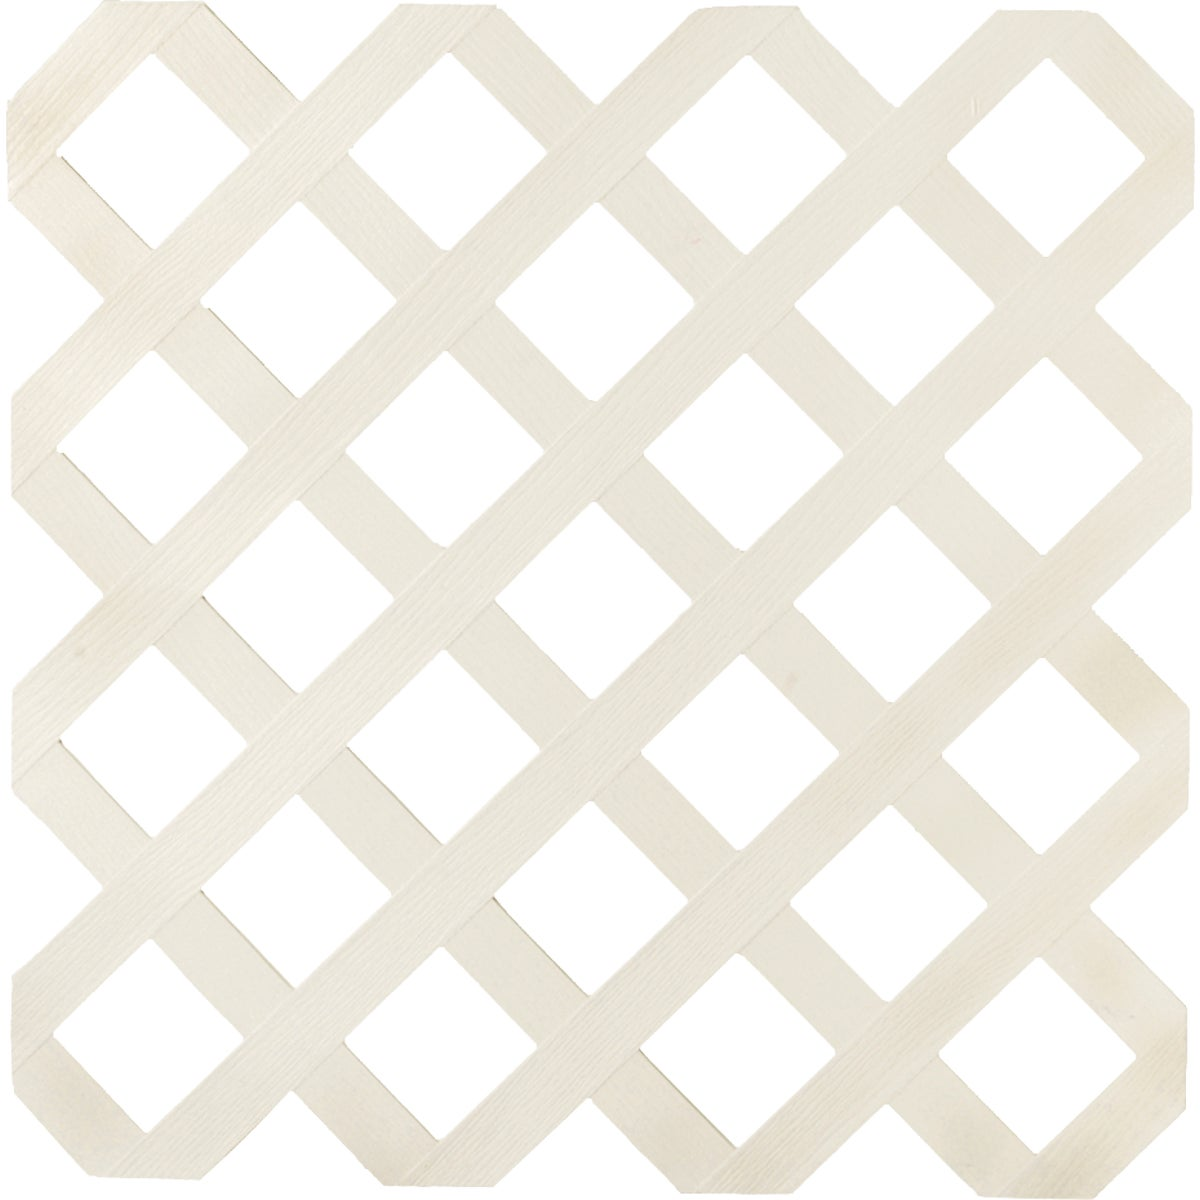 4X8 ALMOND LATTICE - 79907 by Ufpi   Plstc Lattice